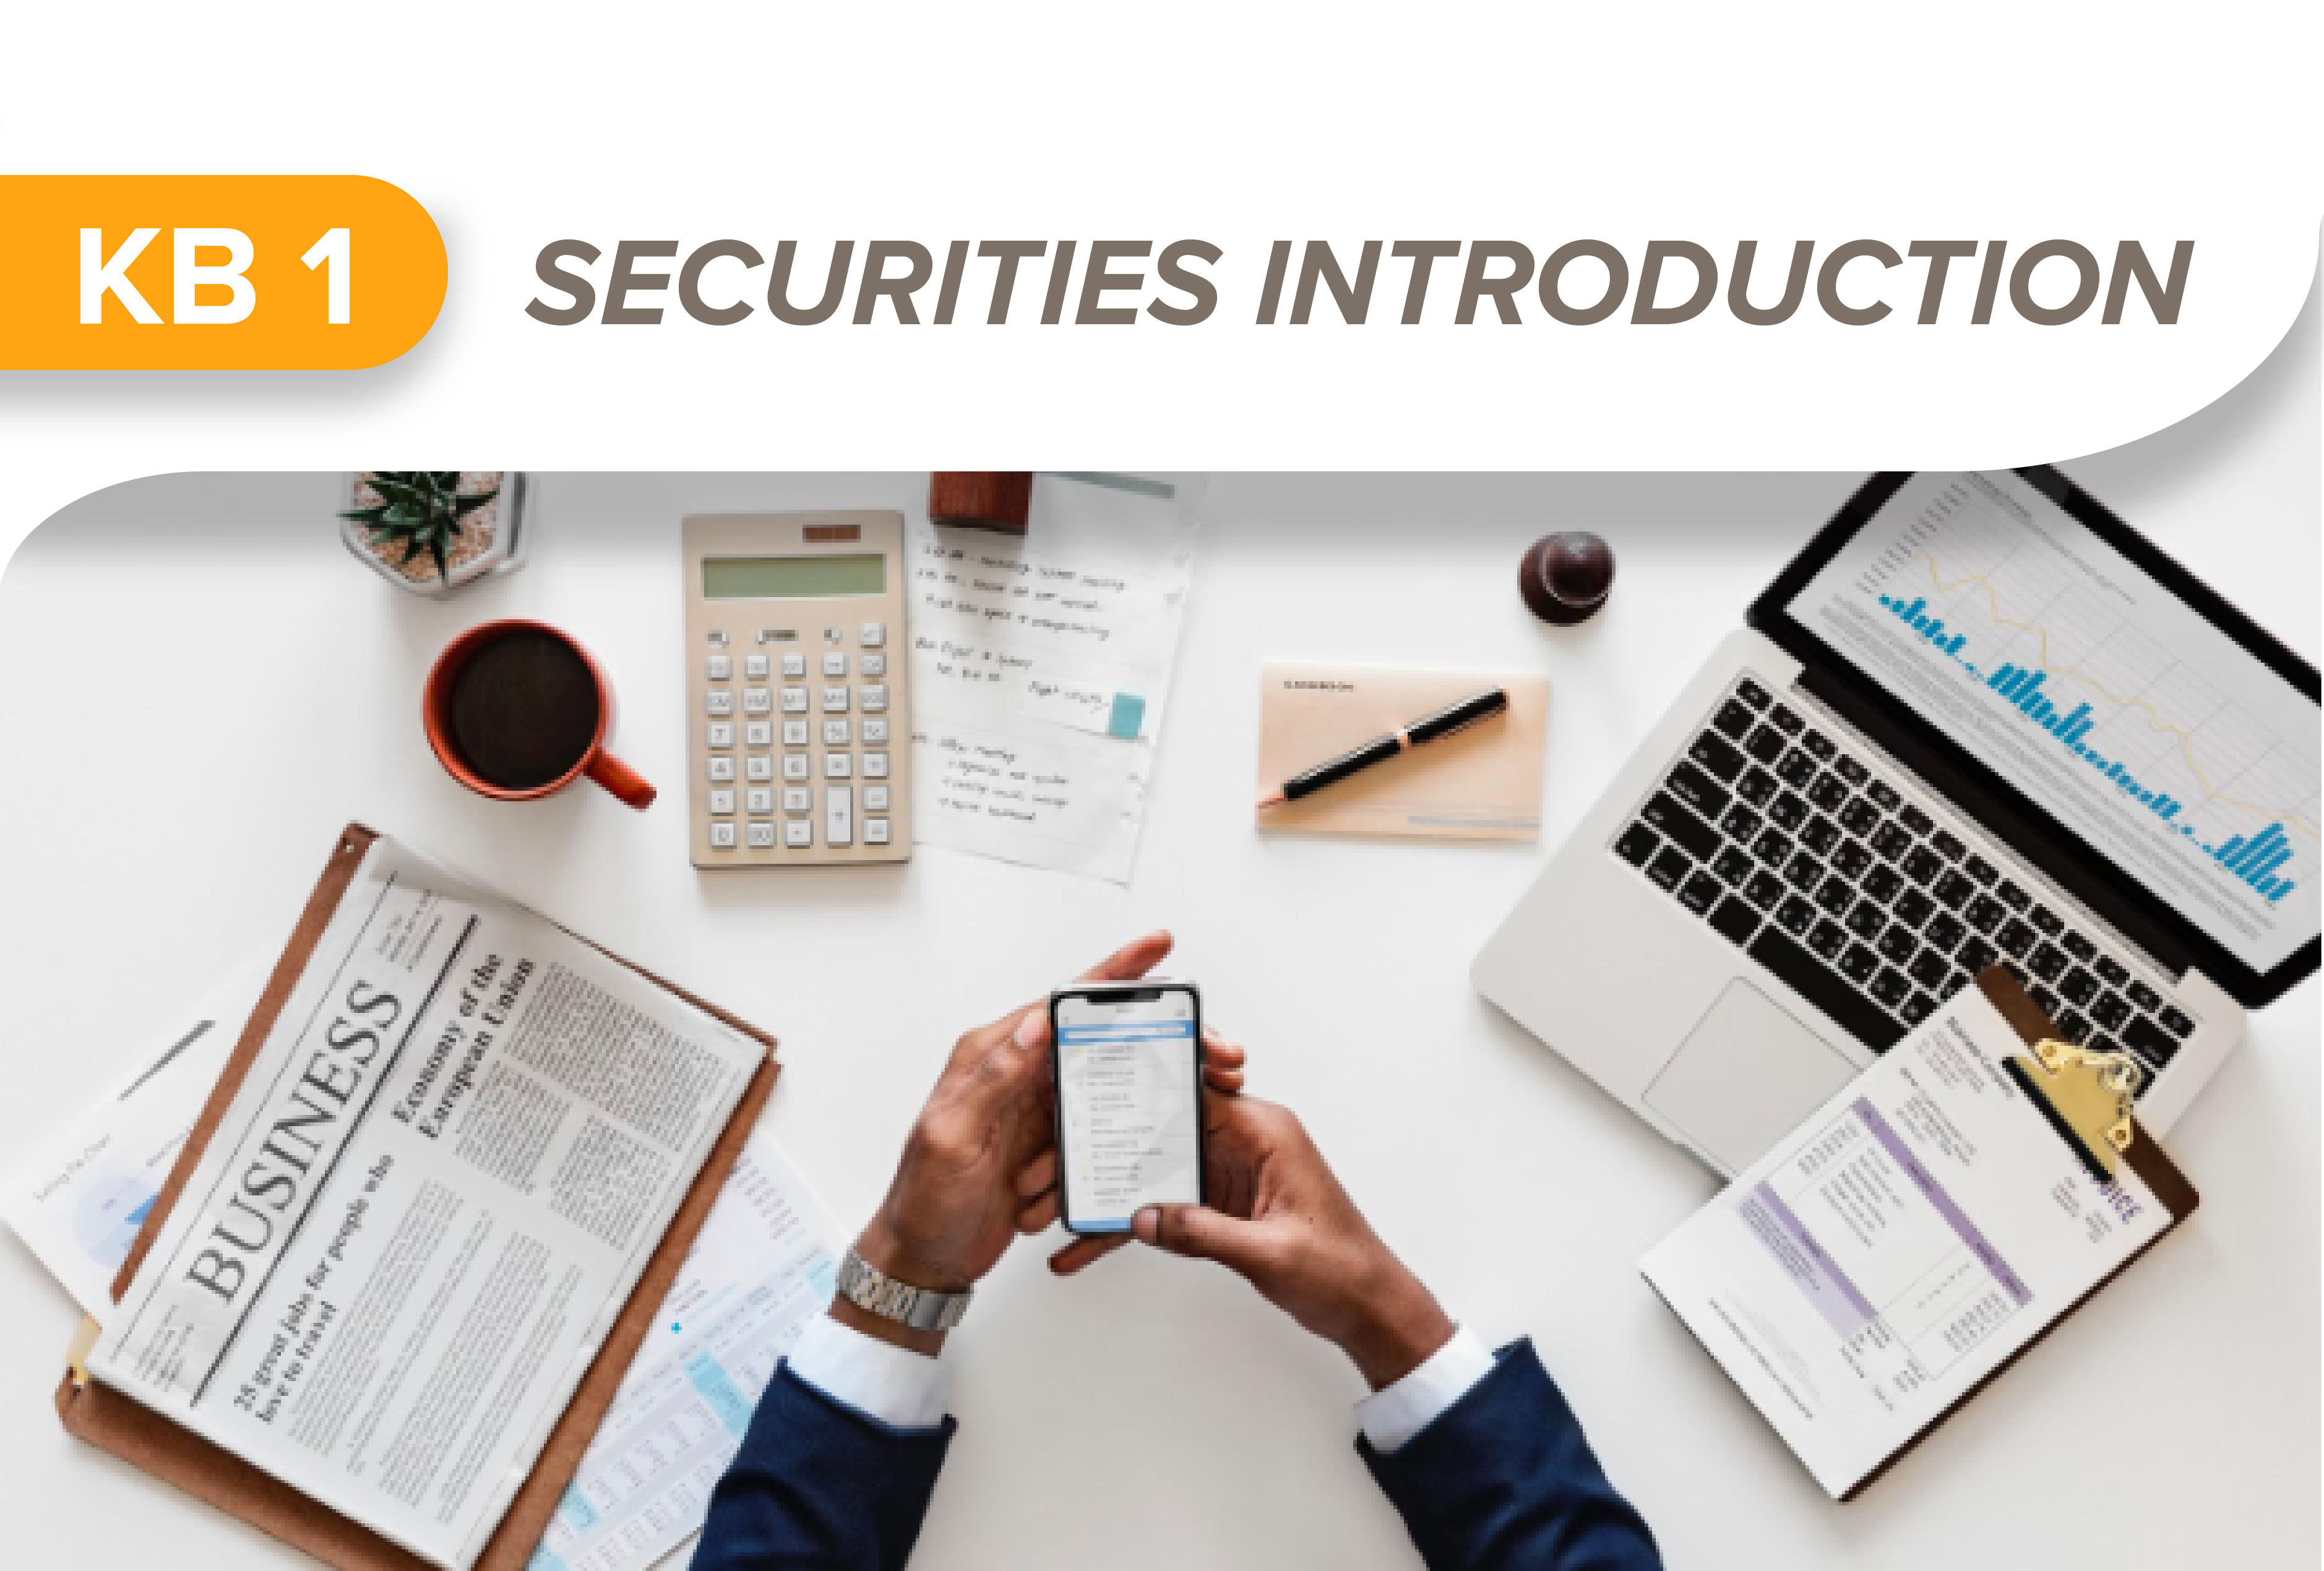 Securities introduction